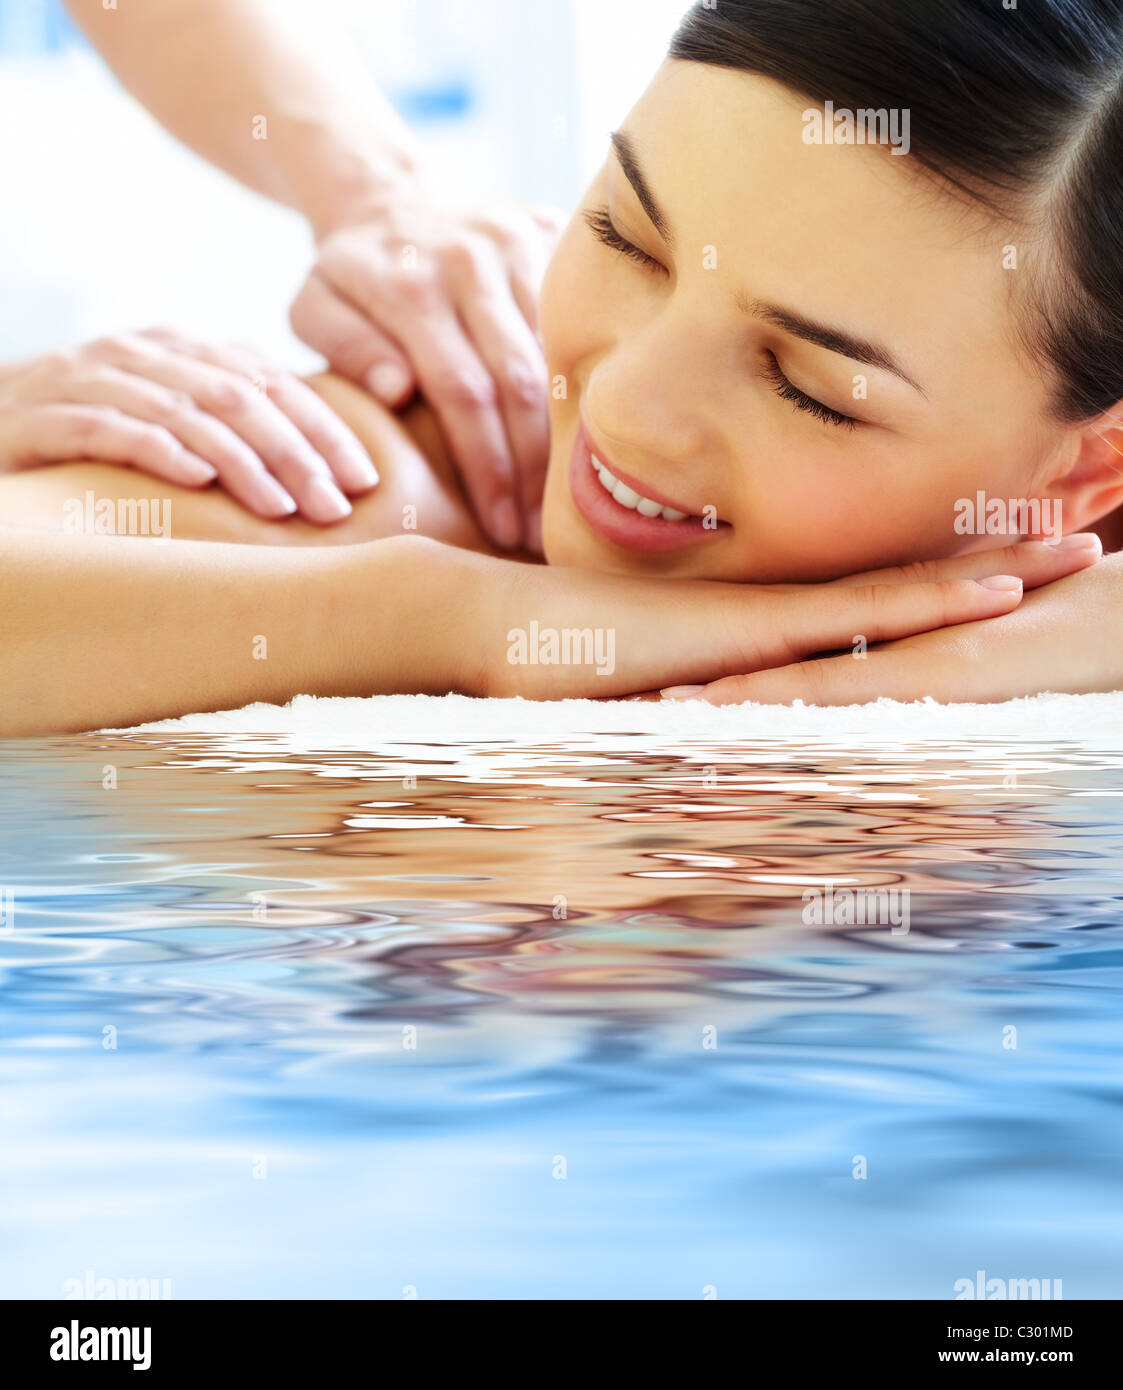 Smiling female during luxurious procedure of massage - Stock Image